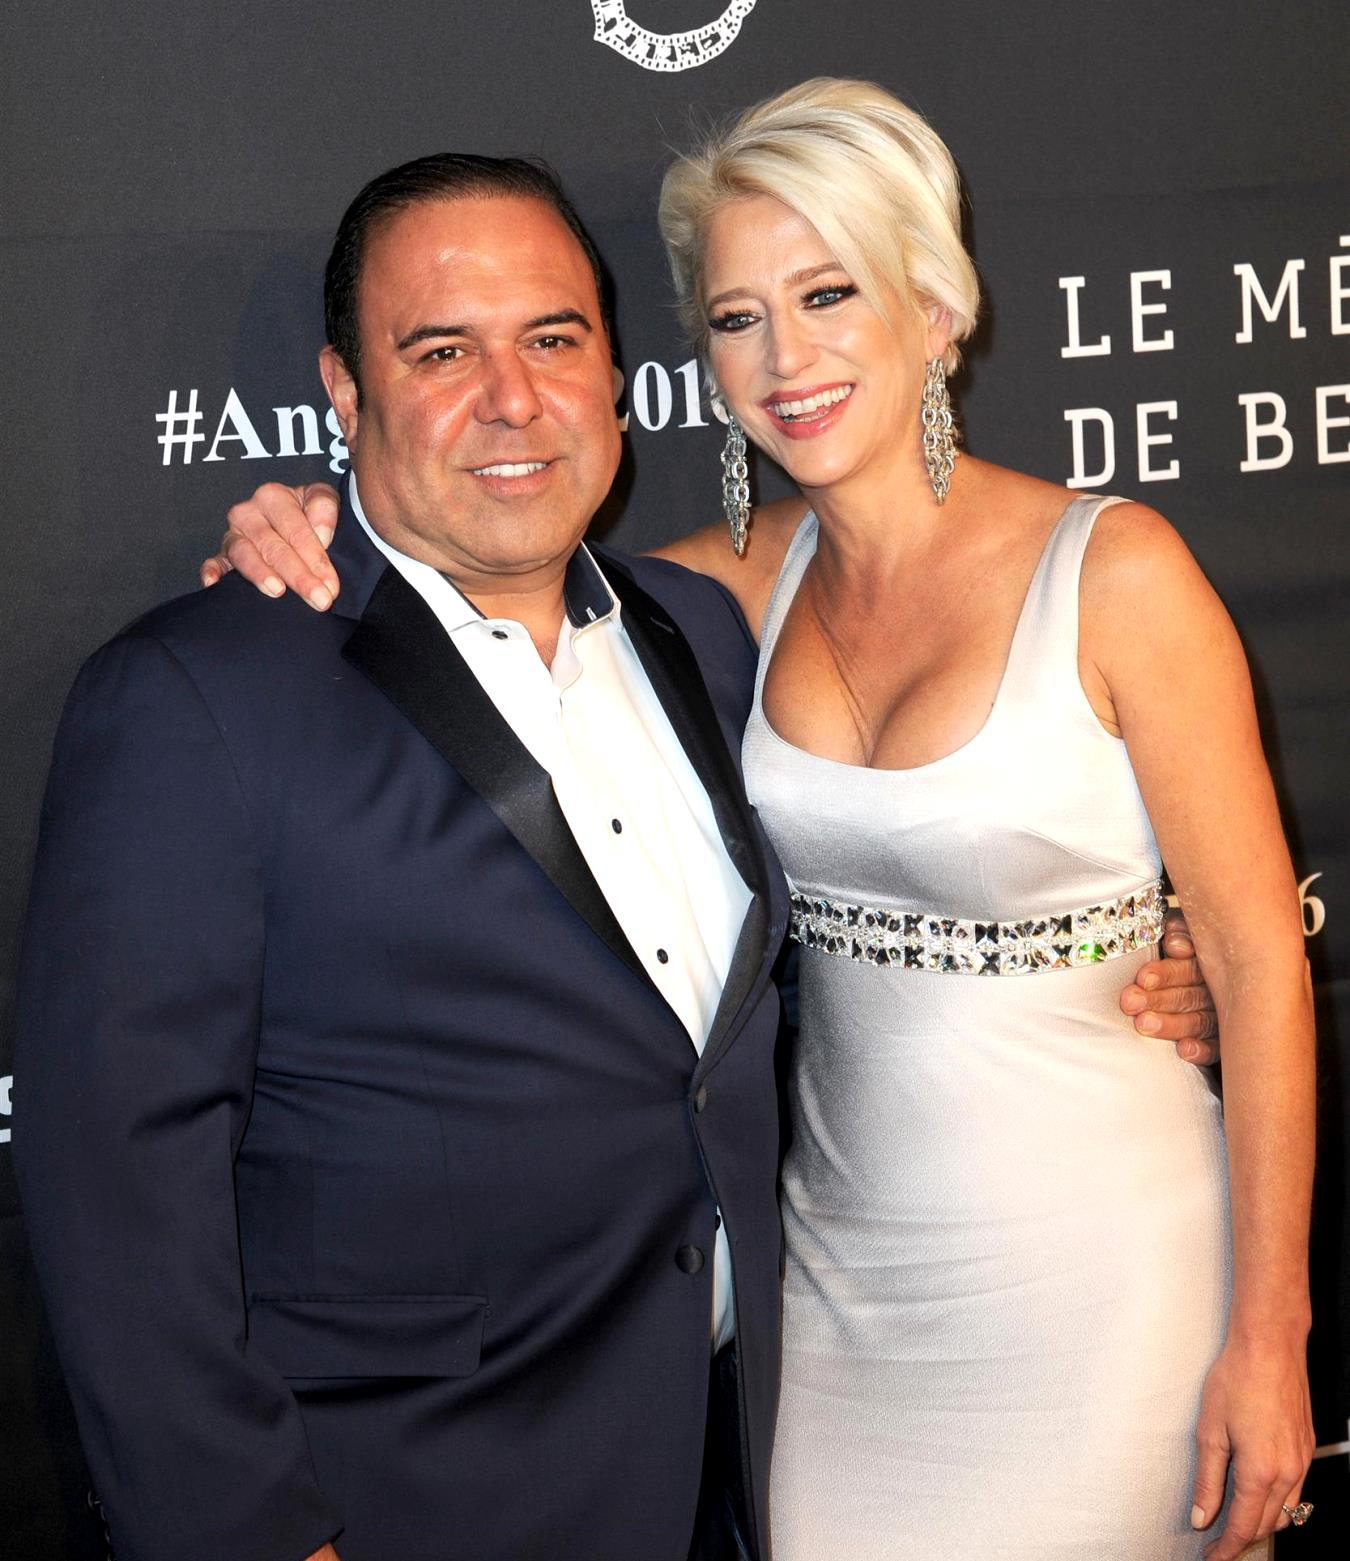 REPORT: RHONY Star Dorinda Medley and Boyfriend John Mahdessian Have Split, Find Out Why